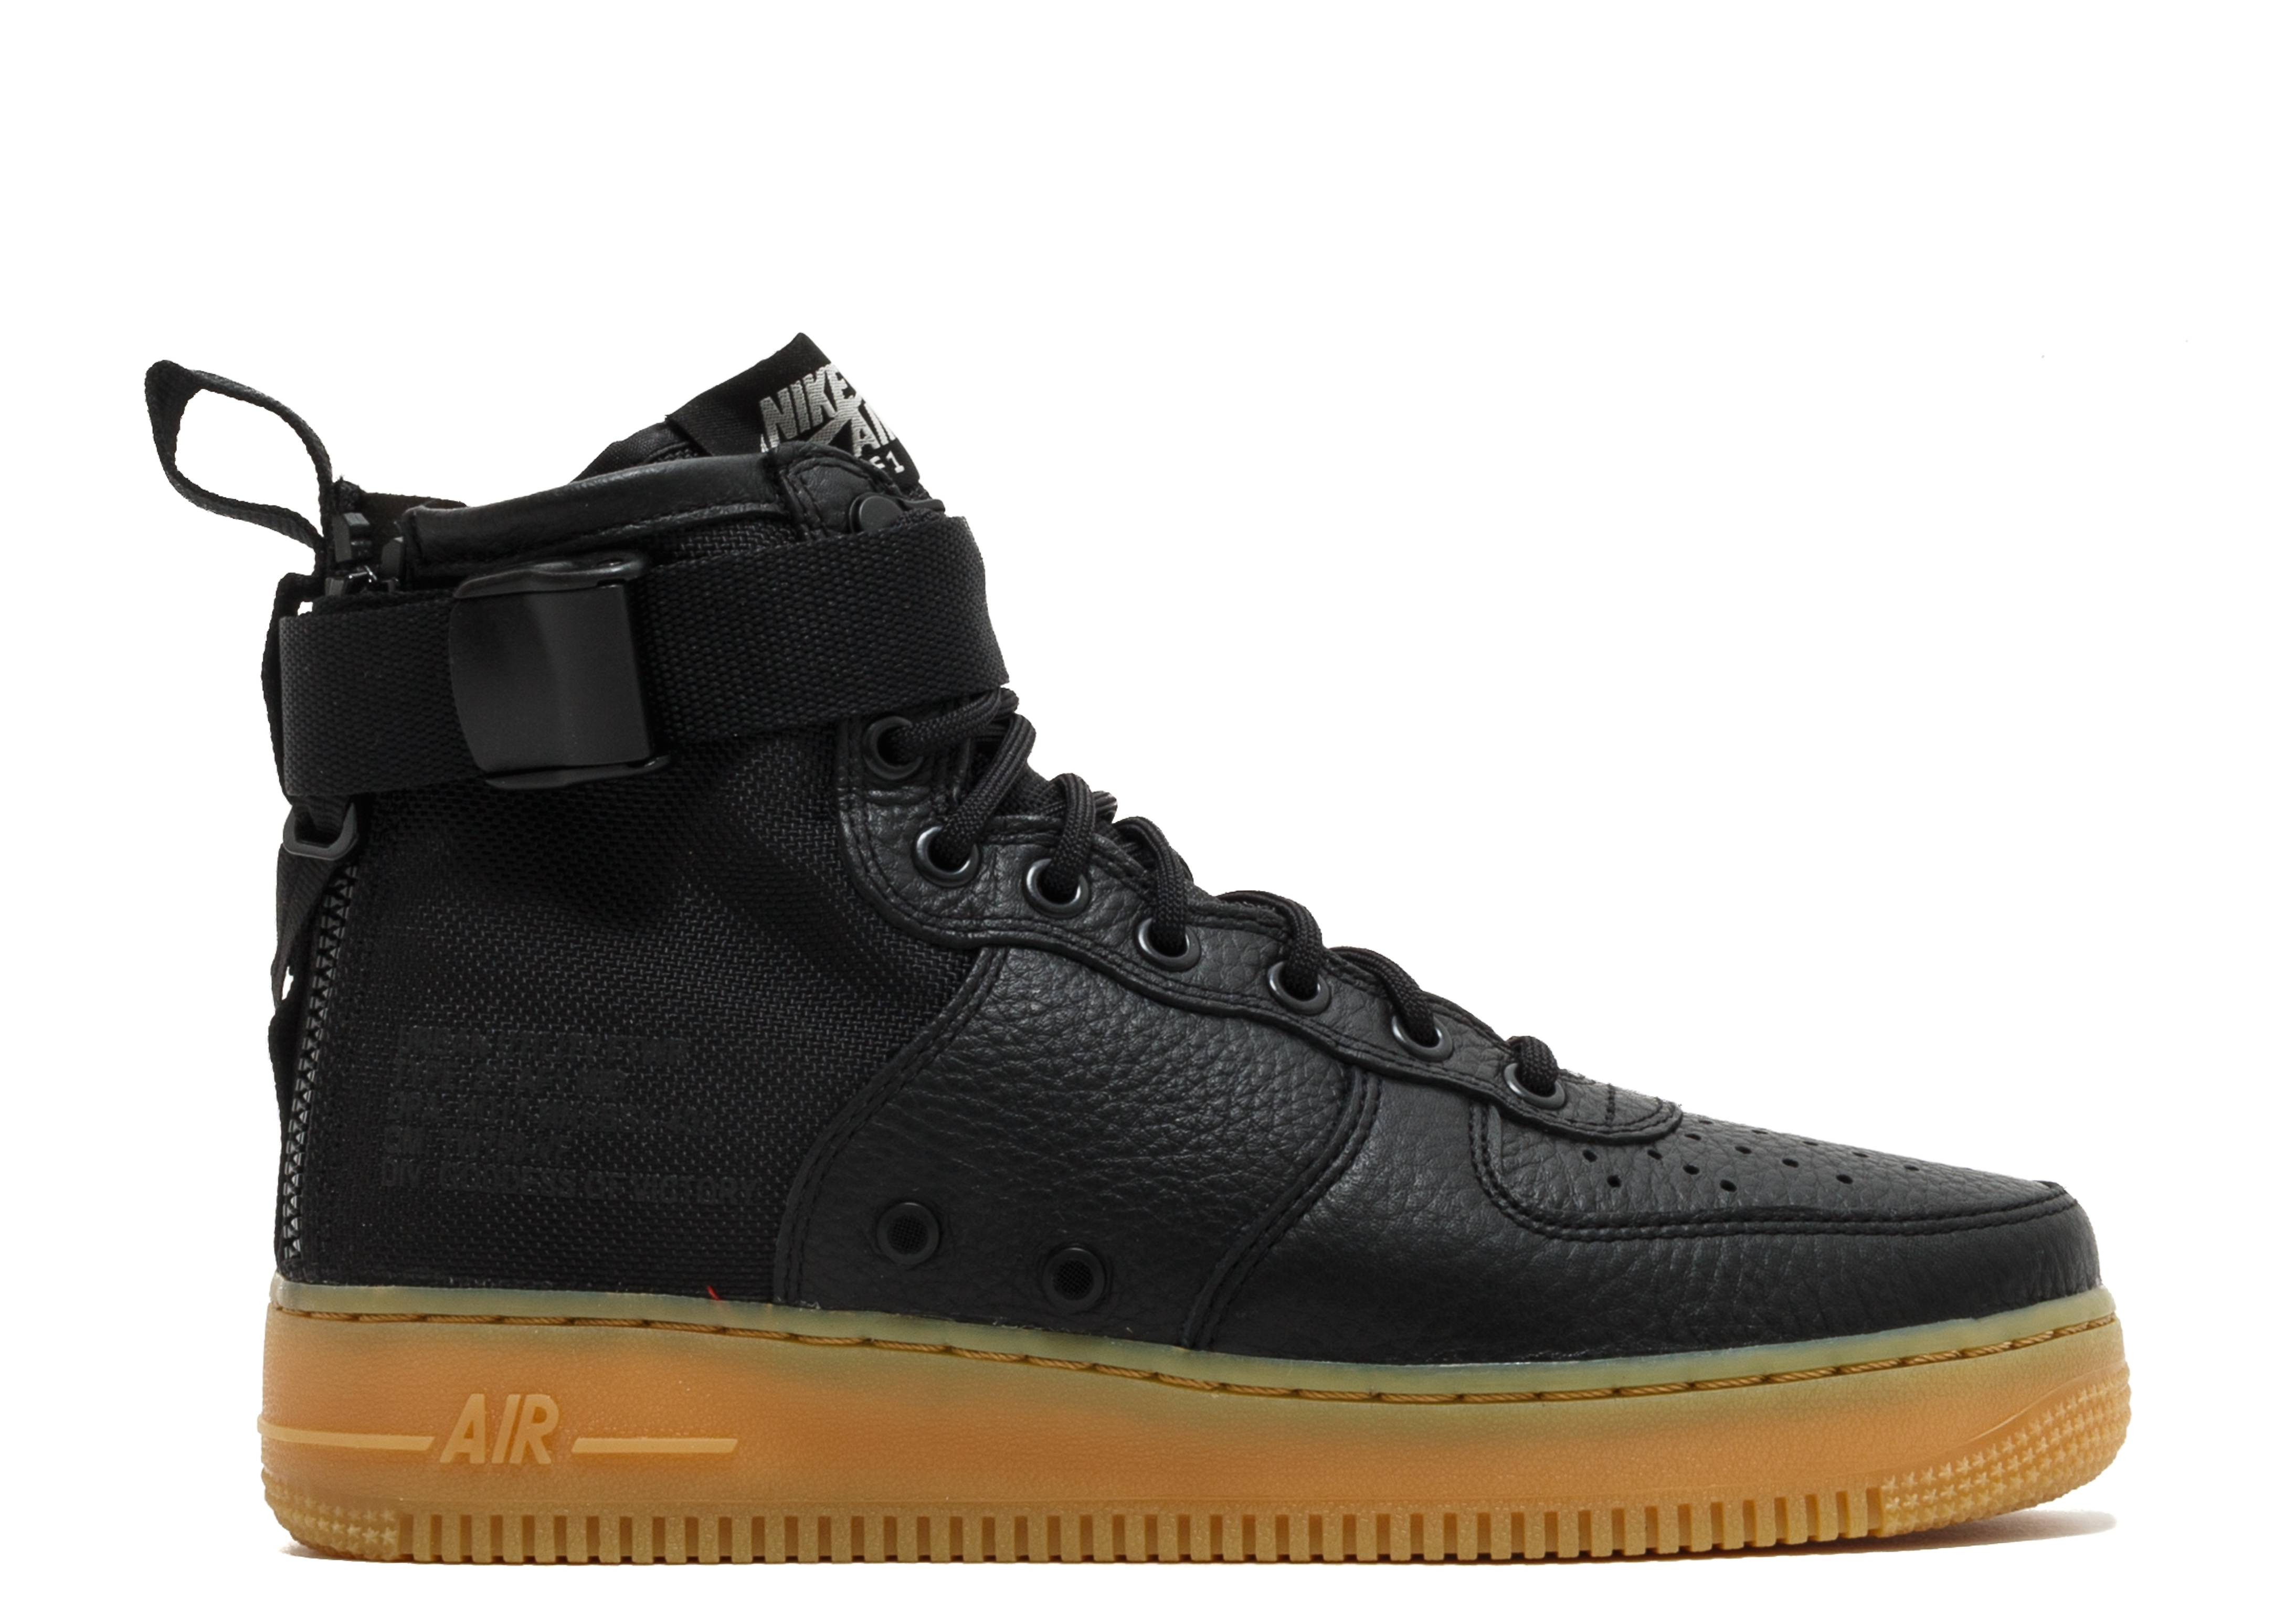 promo code bd323 ad9f1 Air Force 1 Mid - Nike Air Force - Nike | Flight Club